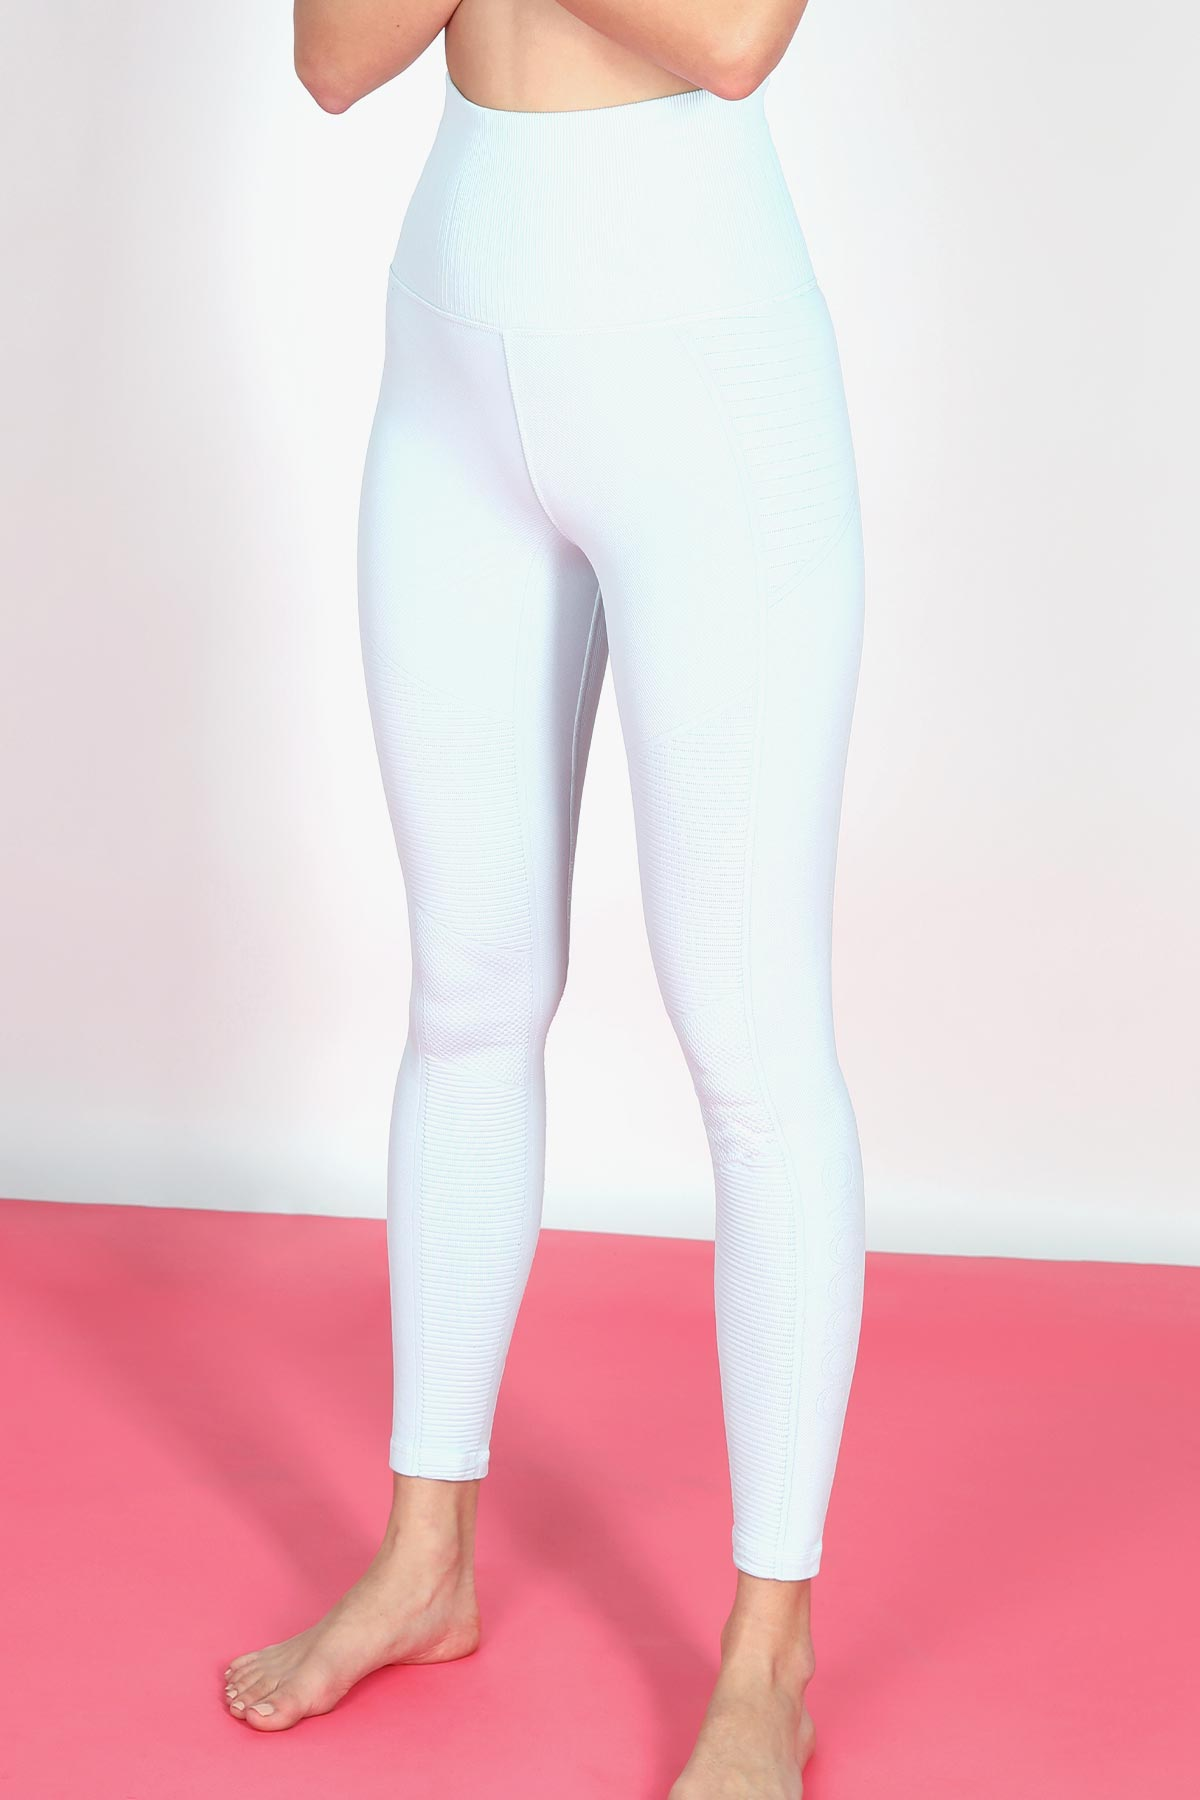 Phoenix Fire Legging in Ballad Blue